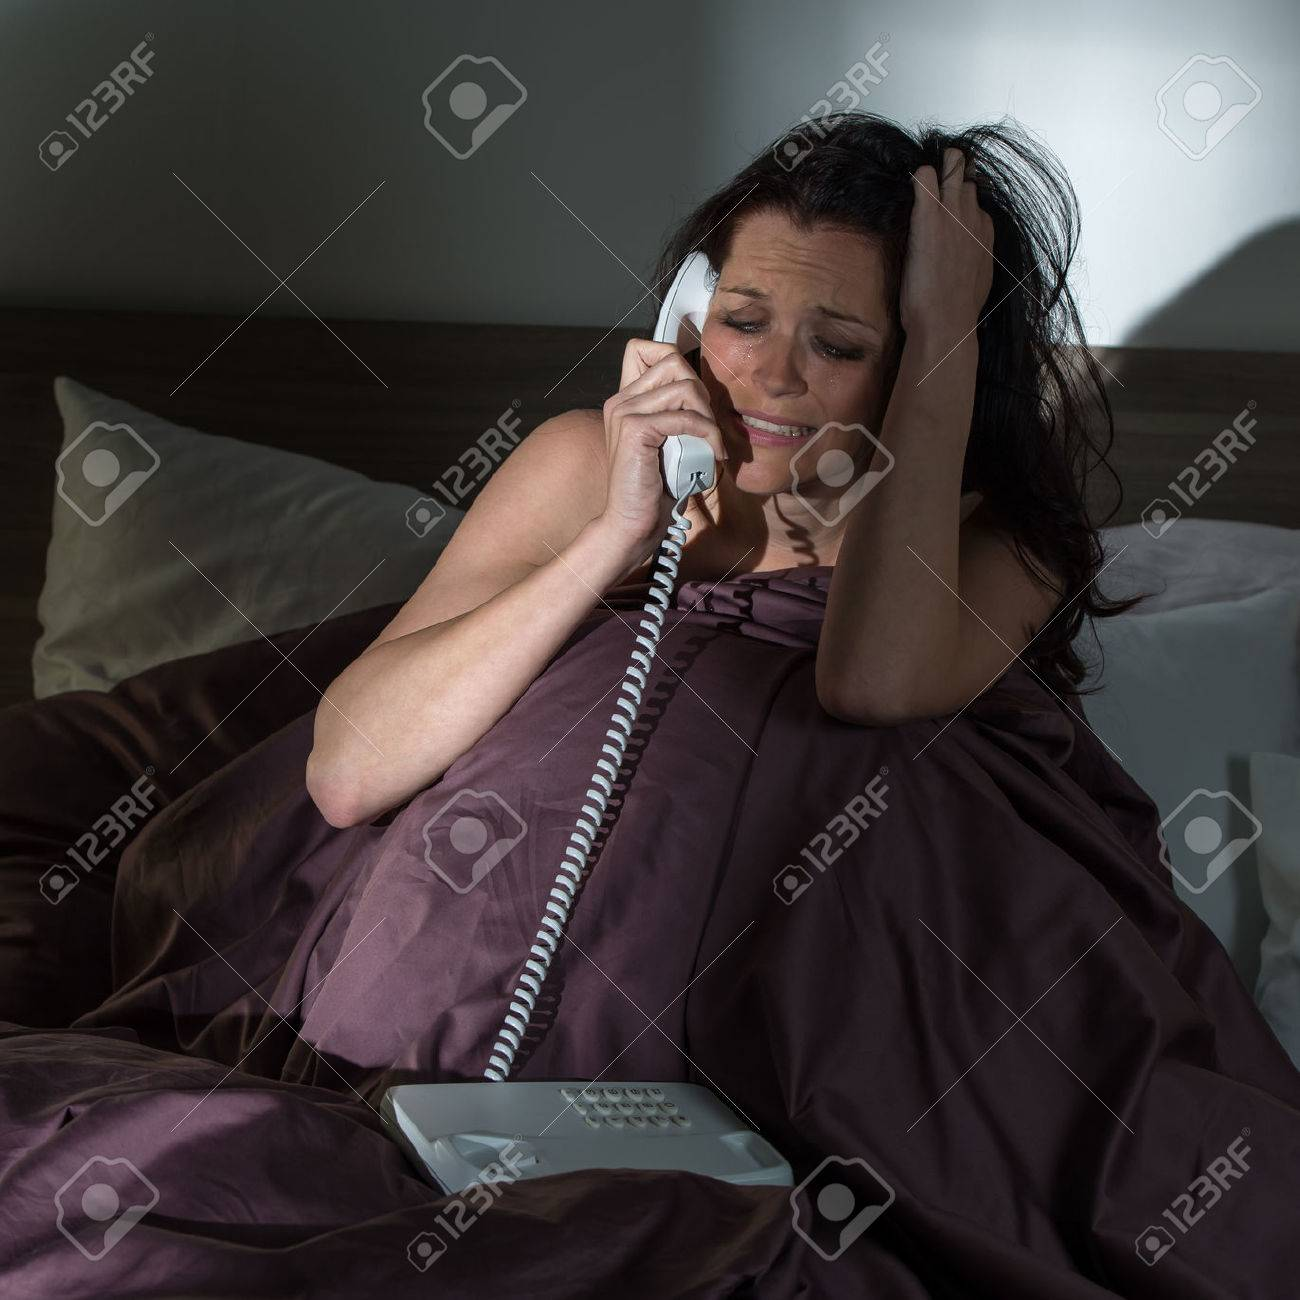 Crying young woman calling phone in bed Stock Photo - 23701311